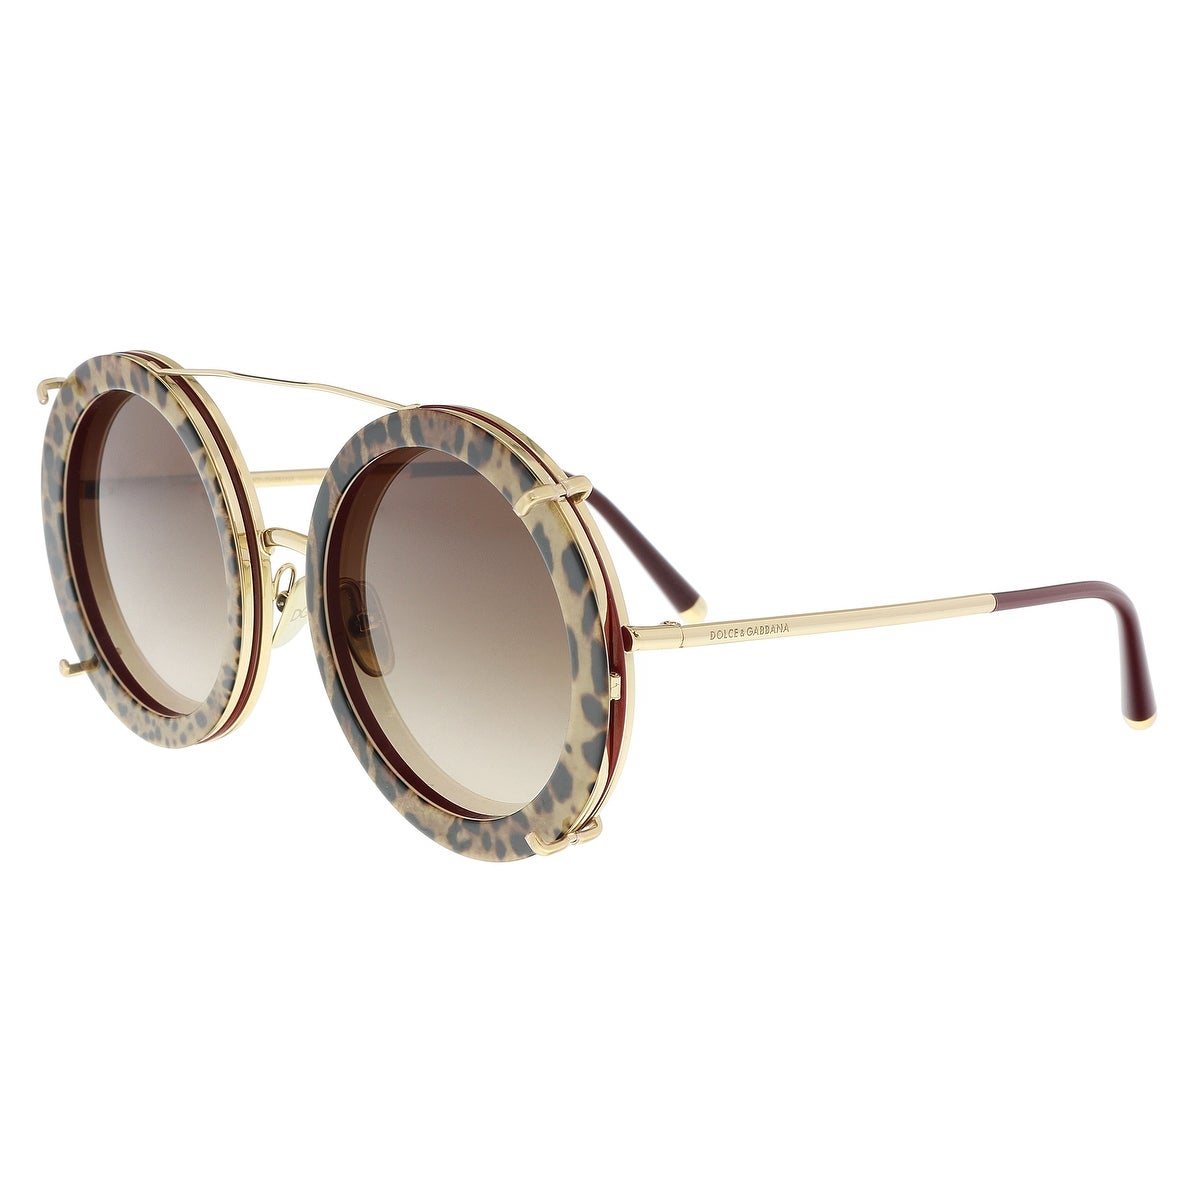 dca5ee04b1cc Round Dolce & Gabbana Women's Sunglasses | Find Great Sunglasses Deals  Shopping at Overstock